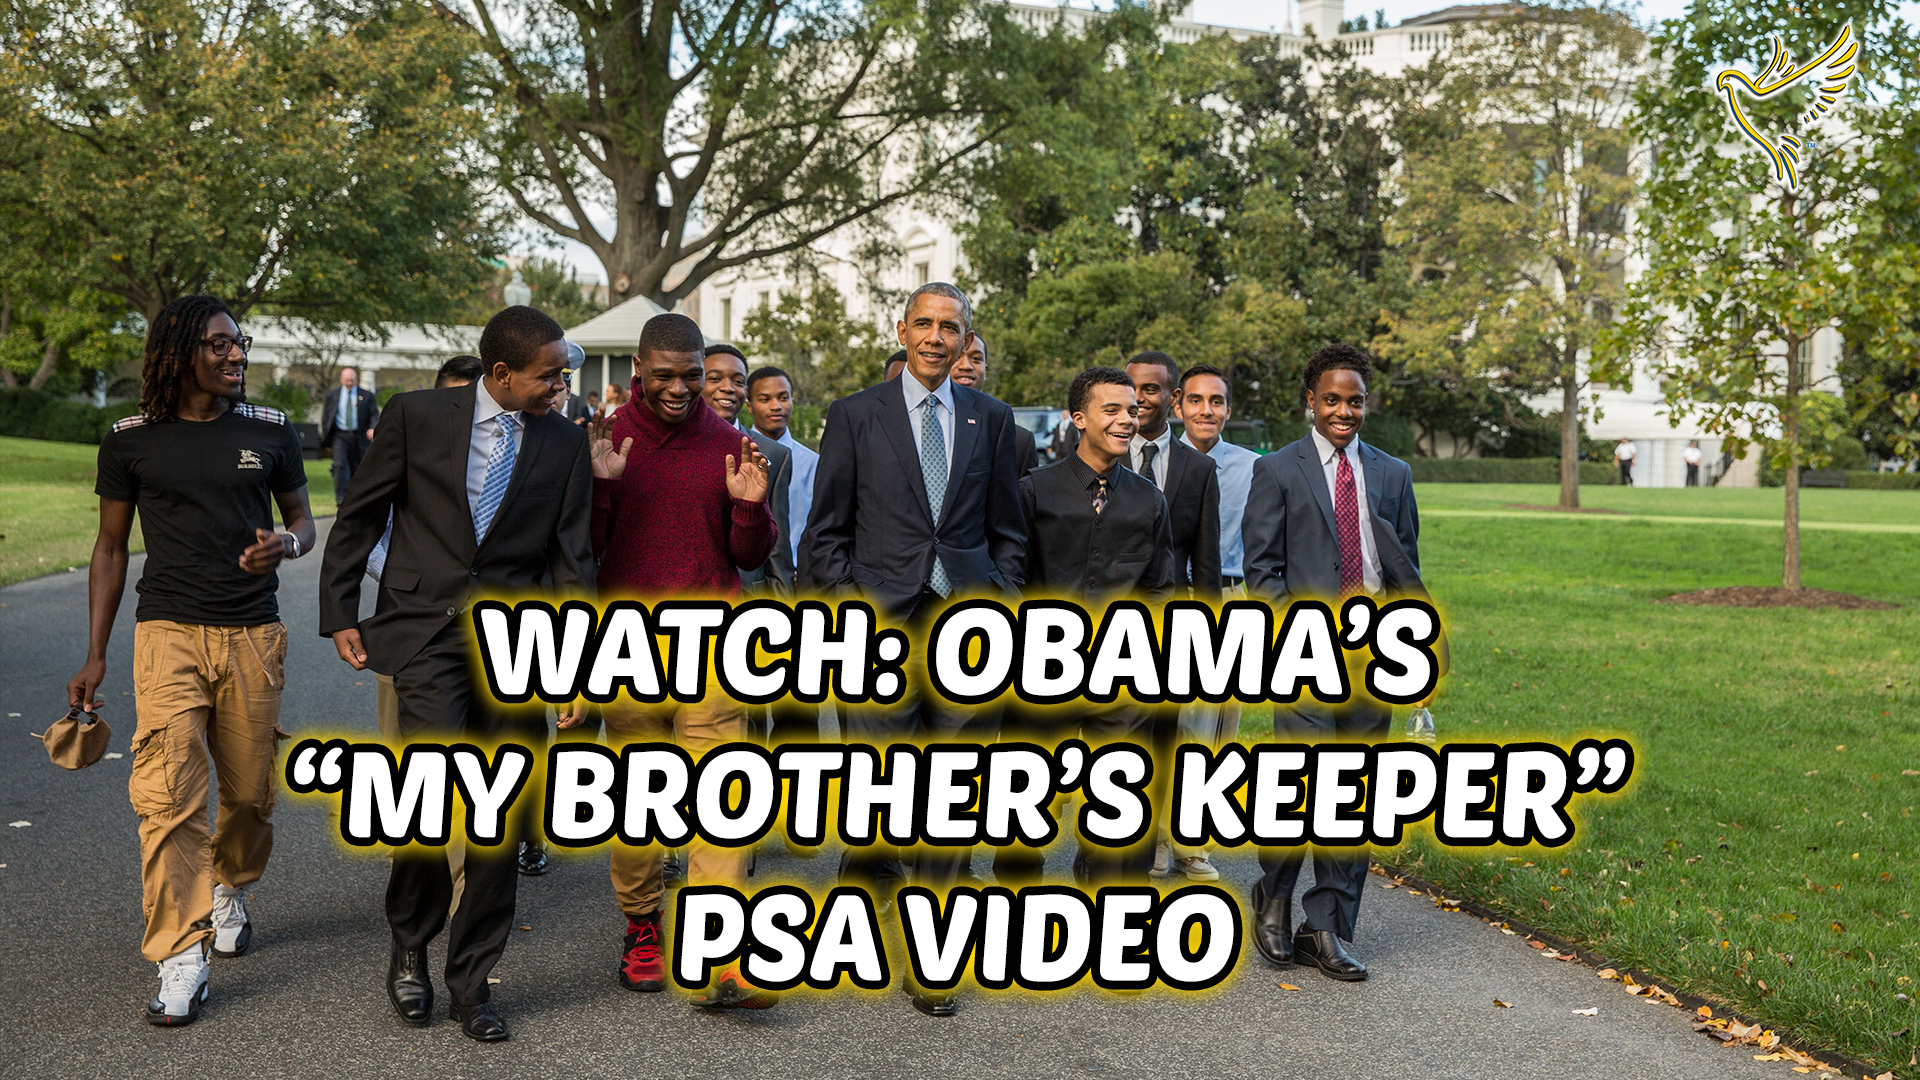 Introducing: The MY BROTHER'S KEEPER Initiative Started By PRESIDENT OBAMA!